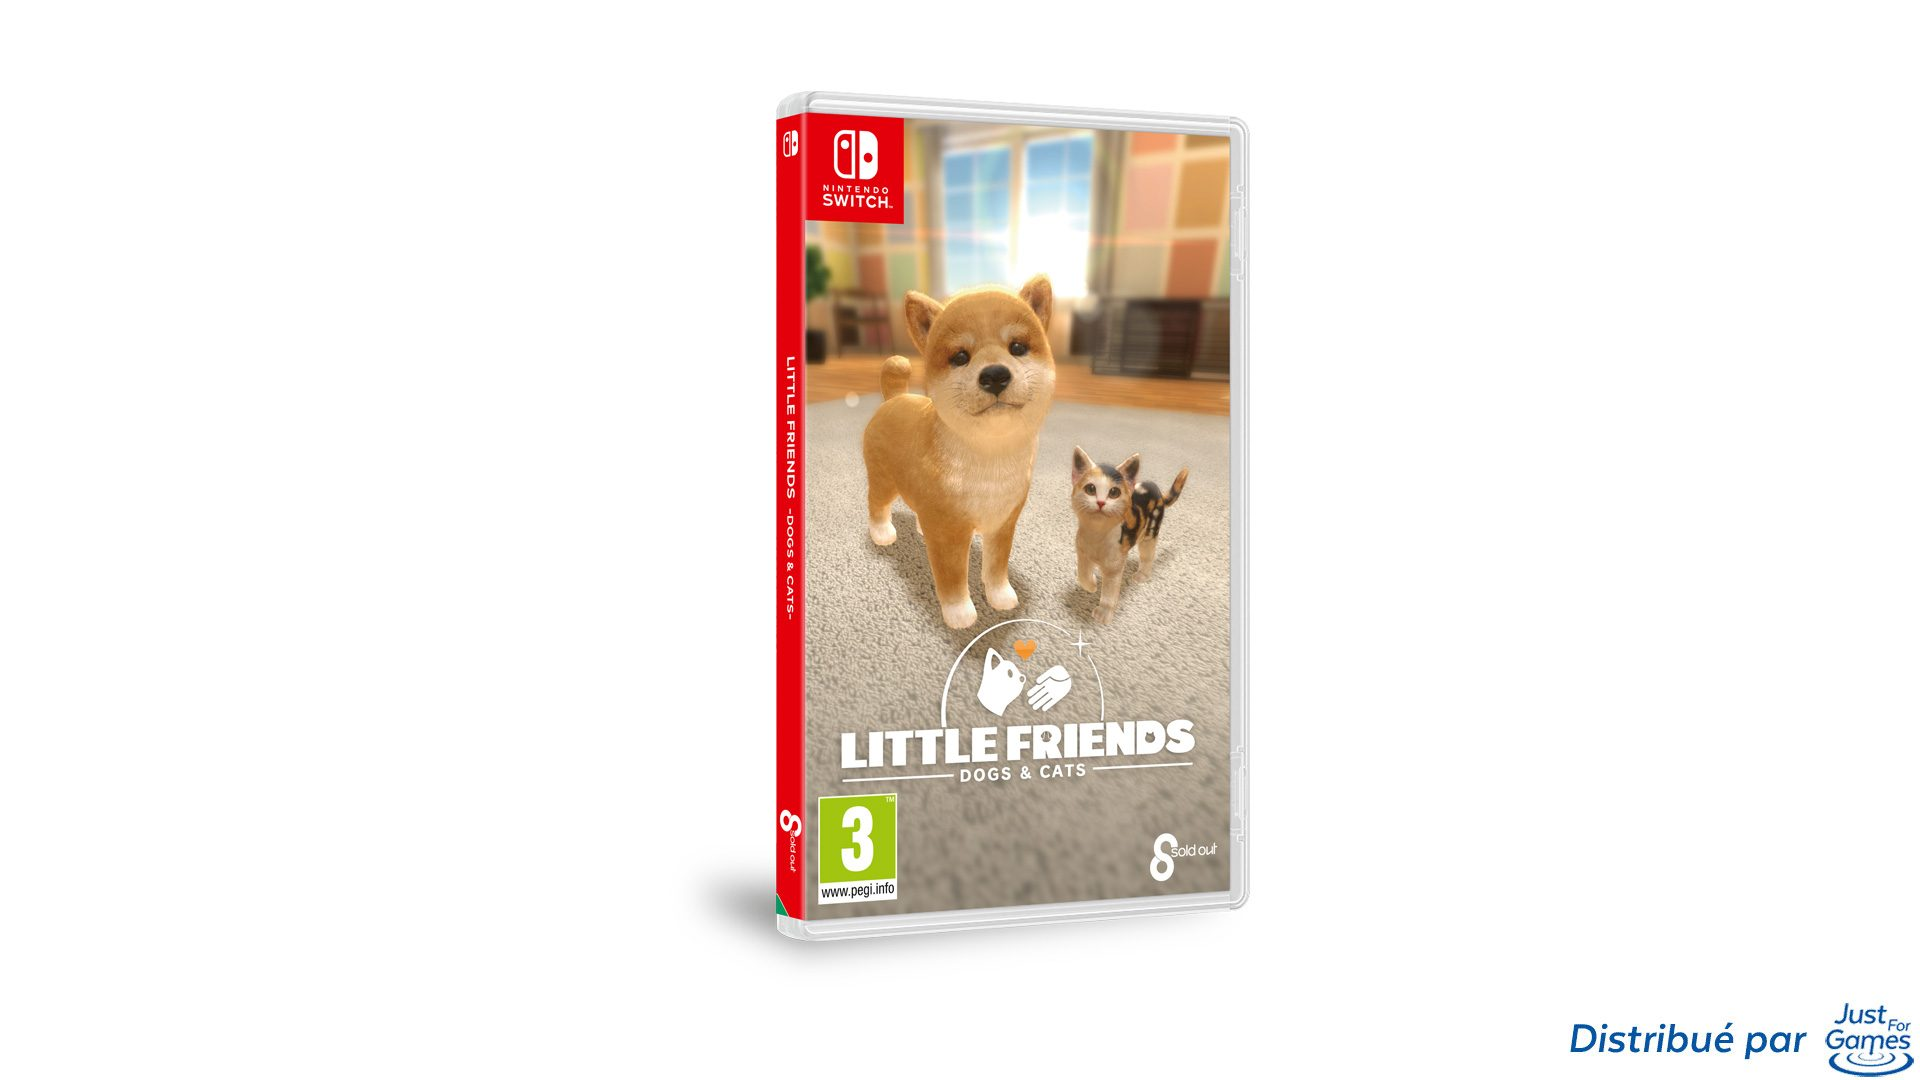 littlefriends_distribution